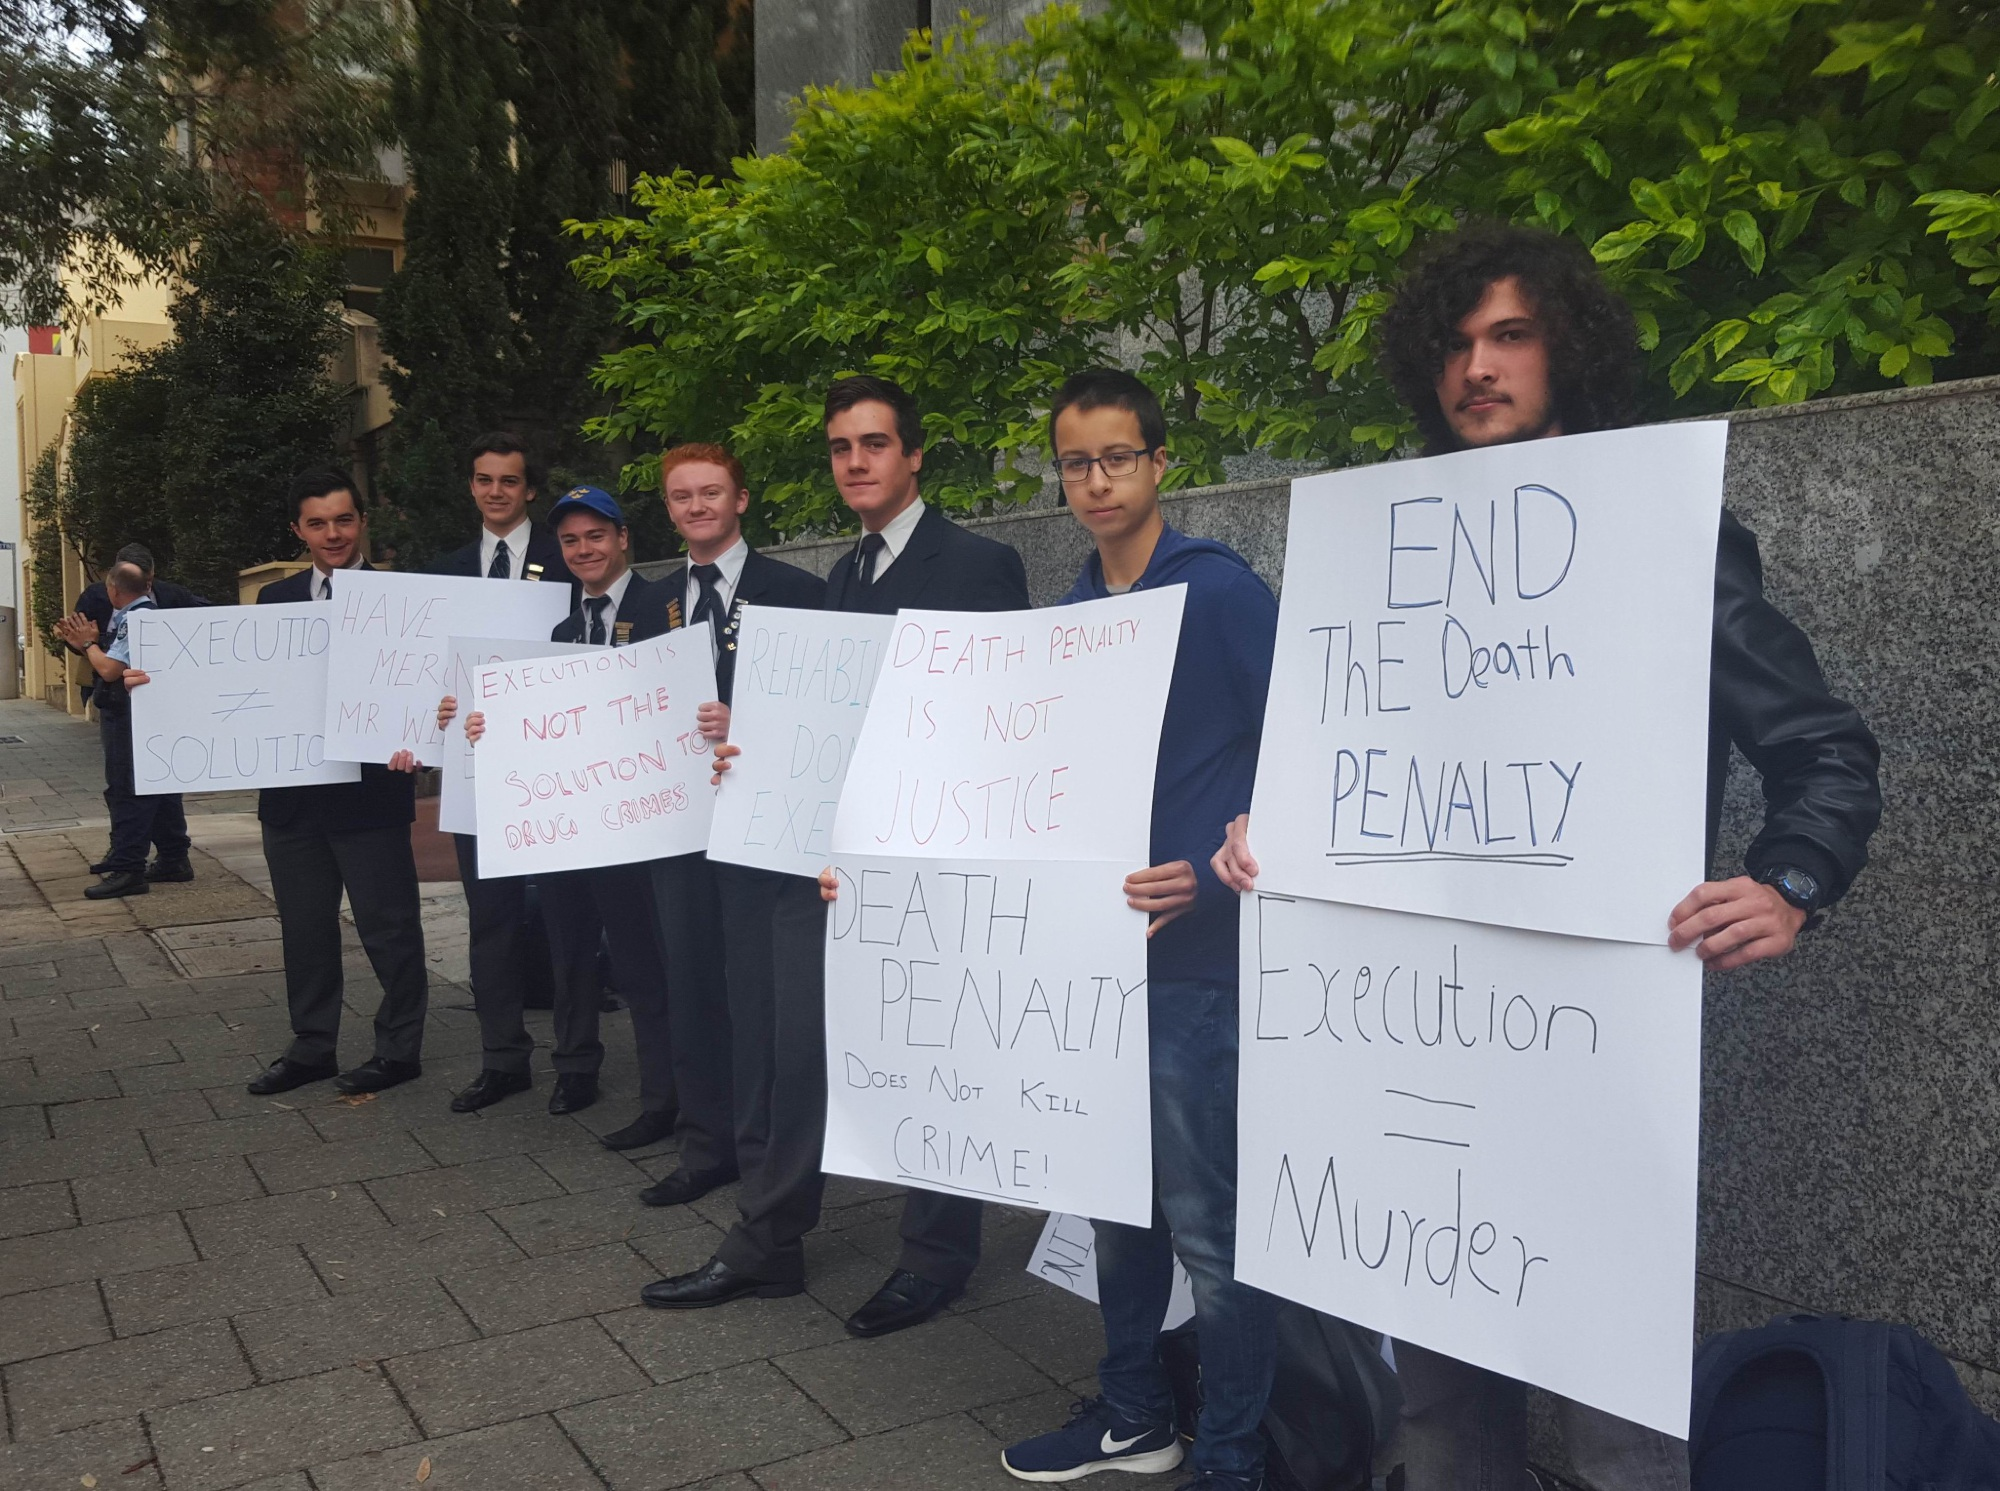 Trinity College students yesterday protested the Indonesian government's stance on the death penalty.